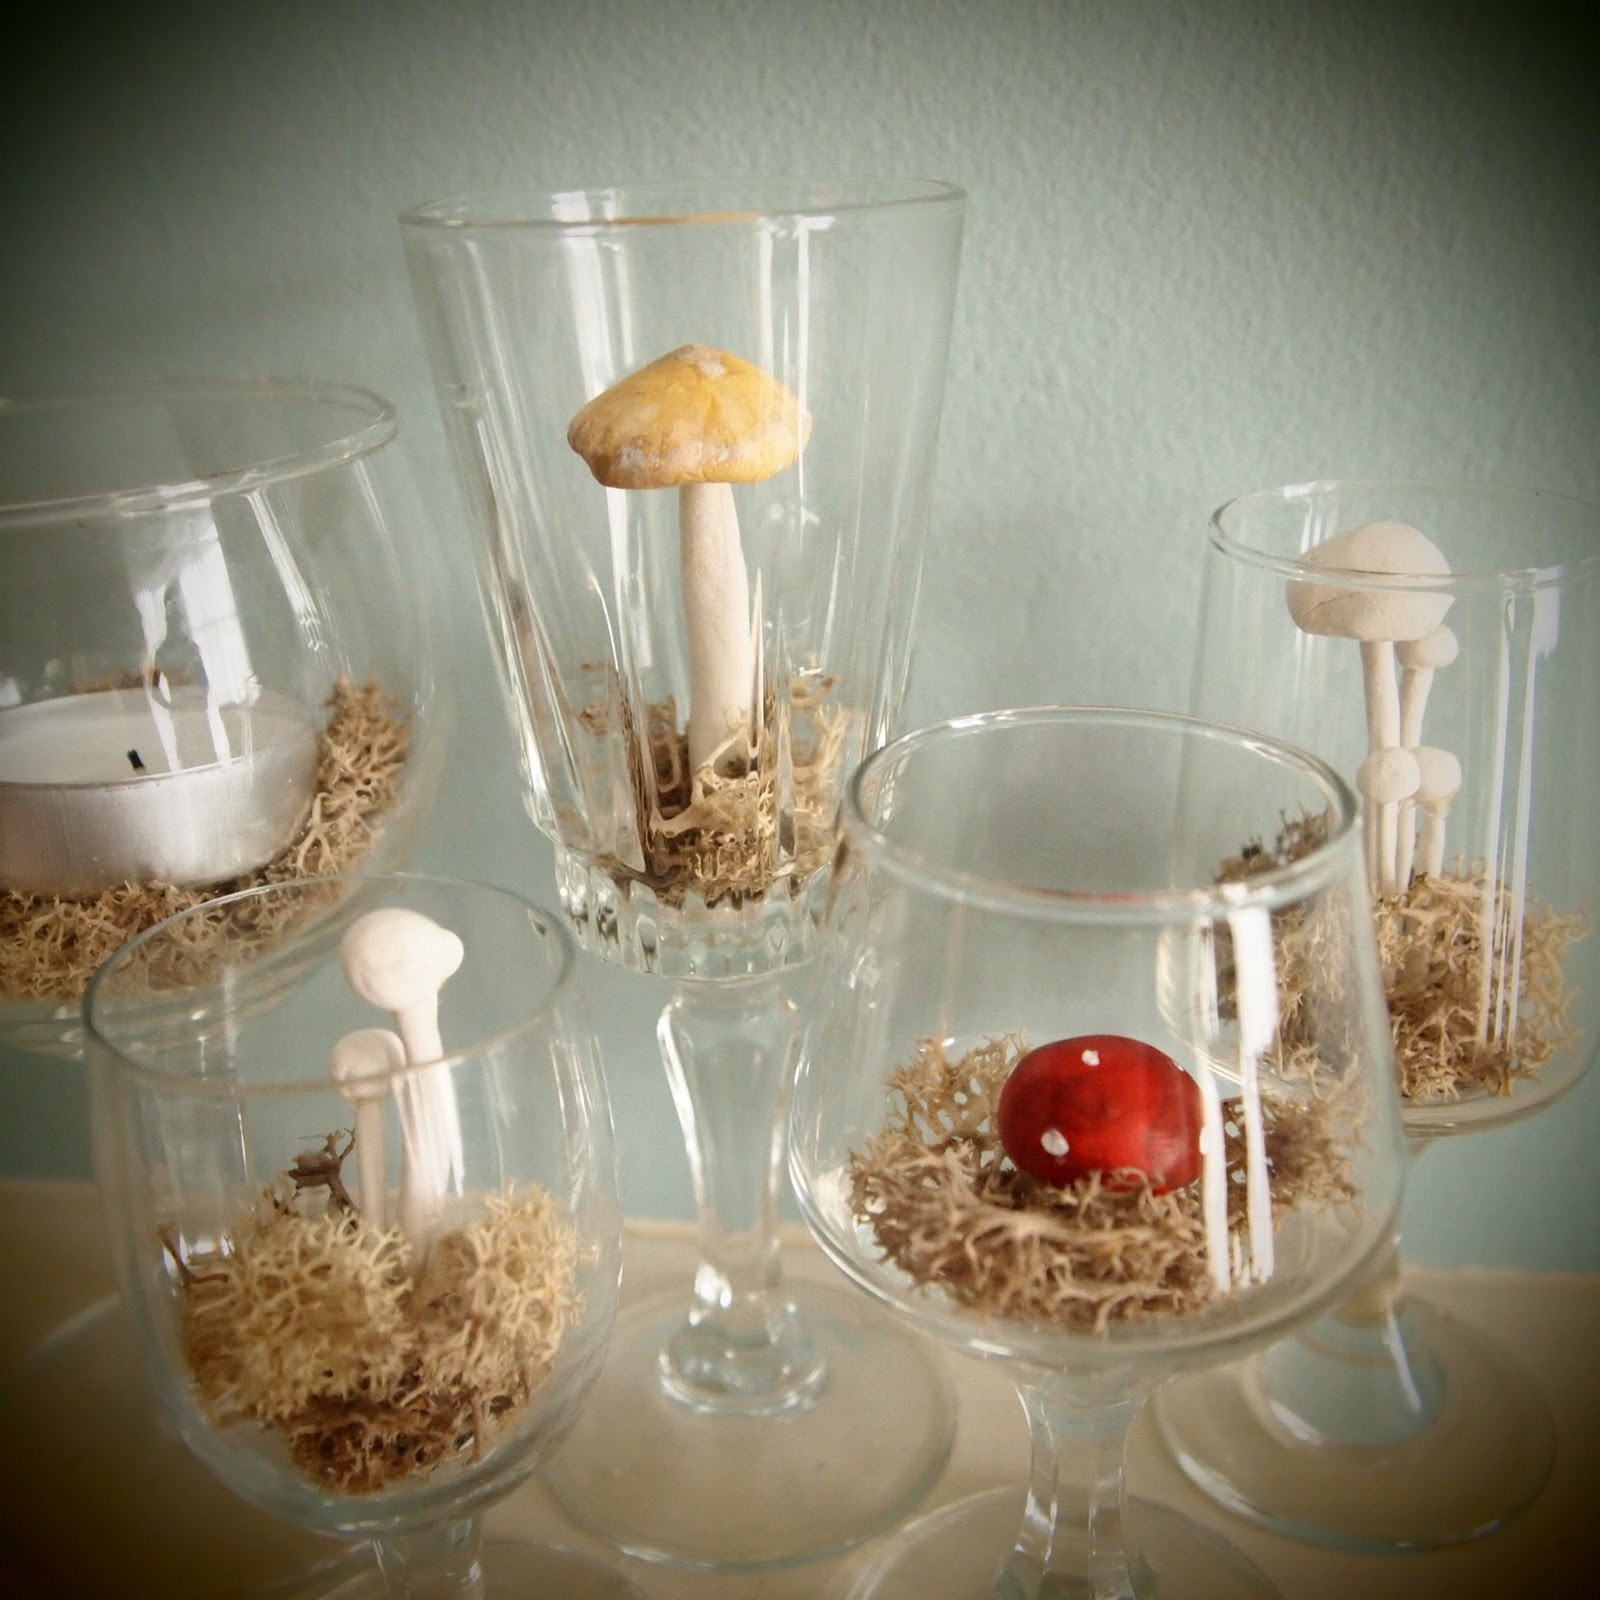 Best ideas about DIY Wedding Table Decorations . Save or Pin Constant Works New DIY wedding table decorations Now.